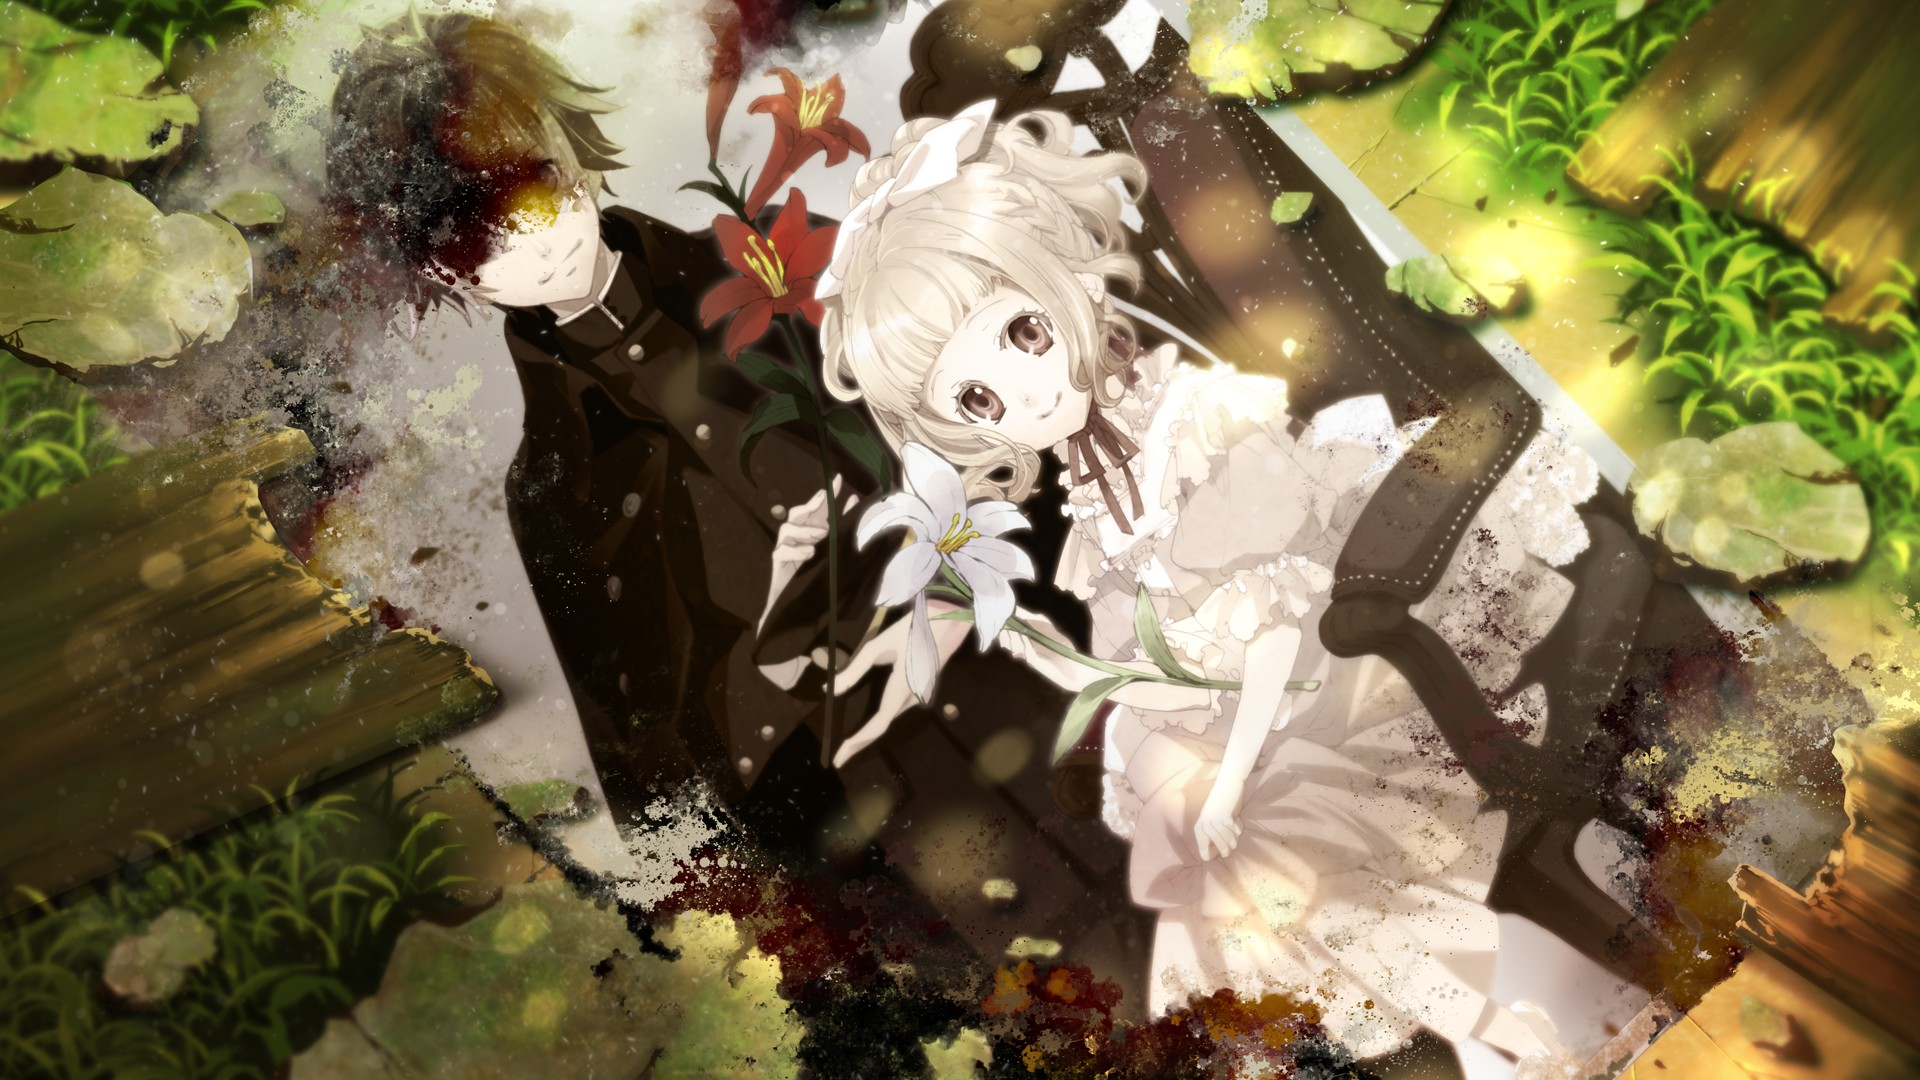 Psychedelica of the Black Butterfly: Best End 02